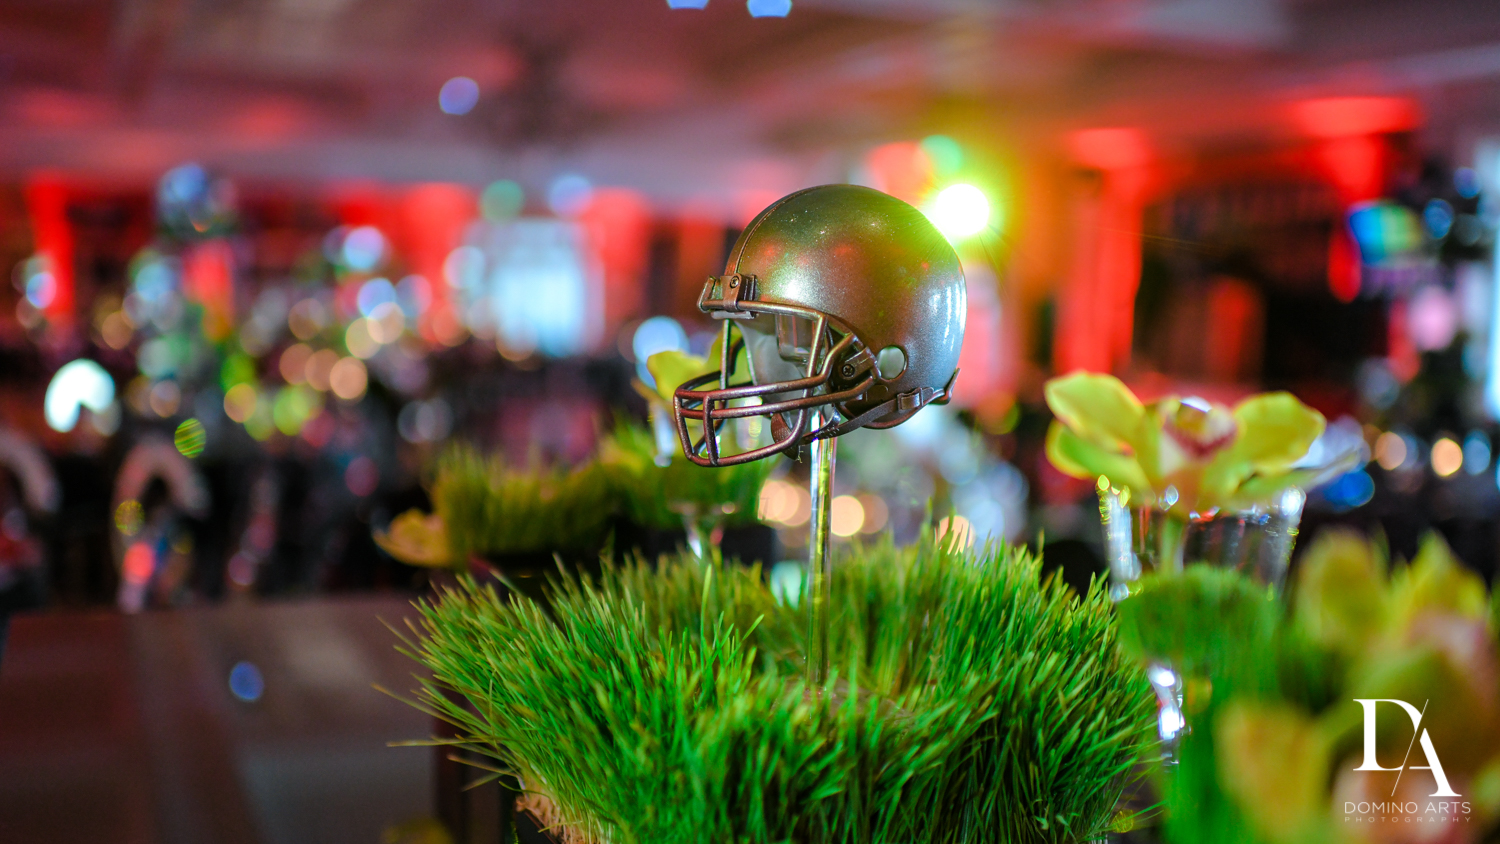 decor details at Football Theme Bar Mitzvah at Temple Beth El and Royal Palm Yacht Club by Domino Arts Photography